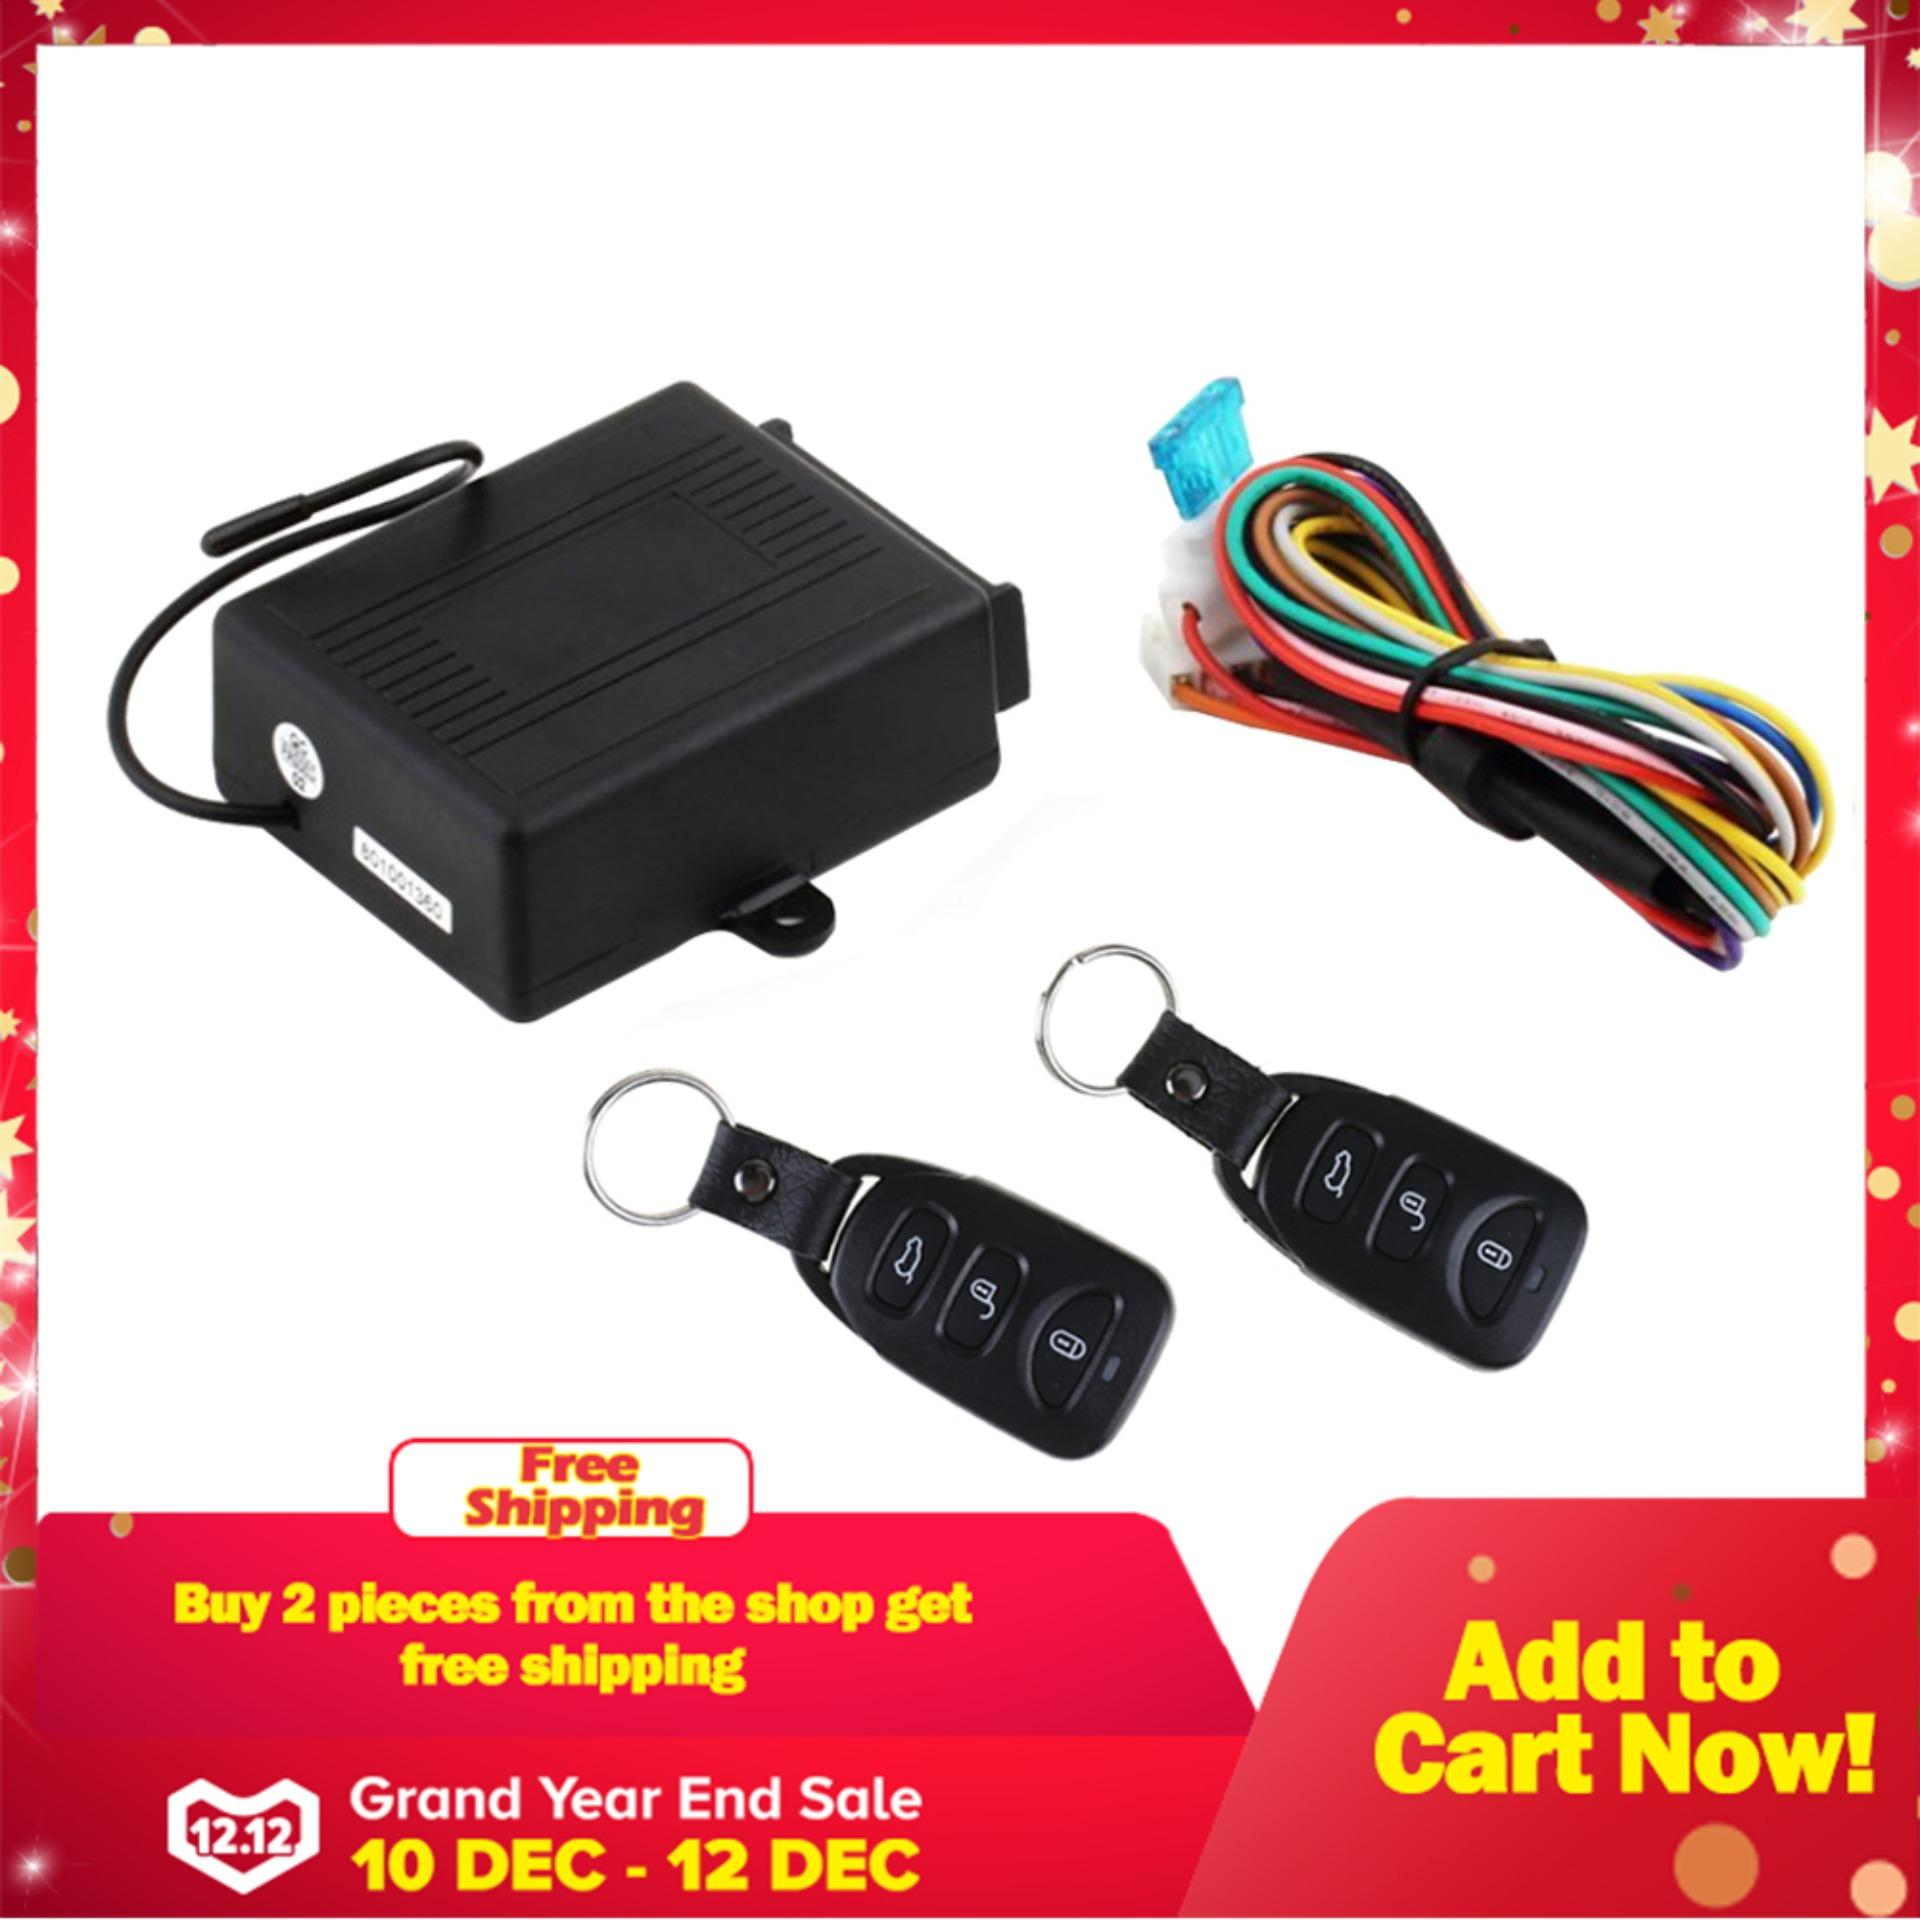 Keyless Entry For Sale Car Online Brands Prices Hyundai Getz Central Locking Wiring Diagram Universal Remote Control Door System Intl